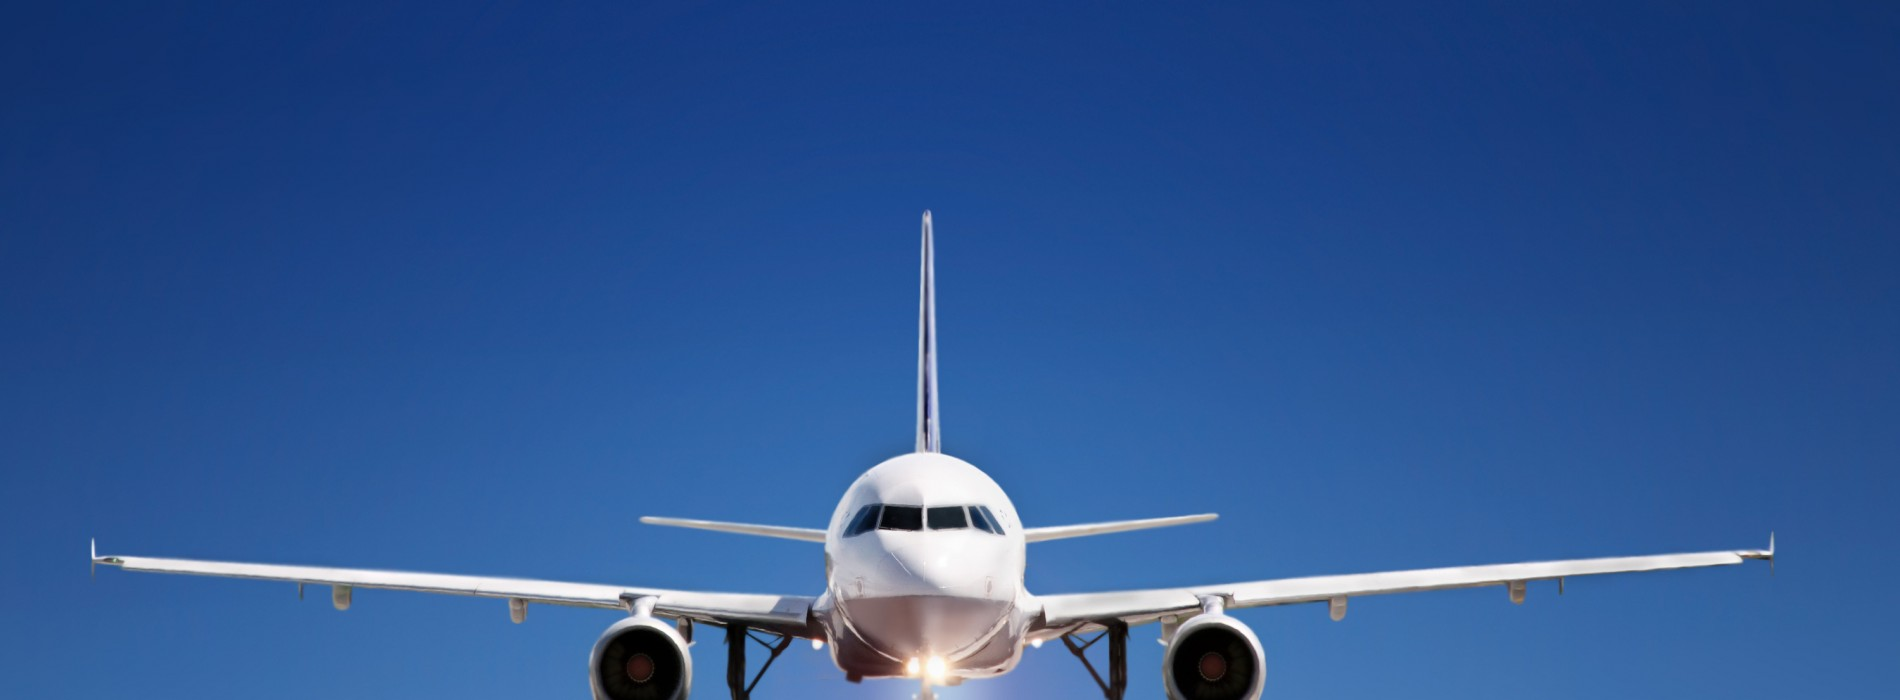 Daily flights from Hisar to Chandigarh, Delhi from August 15